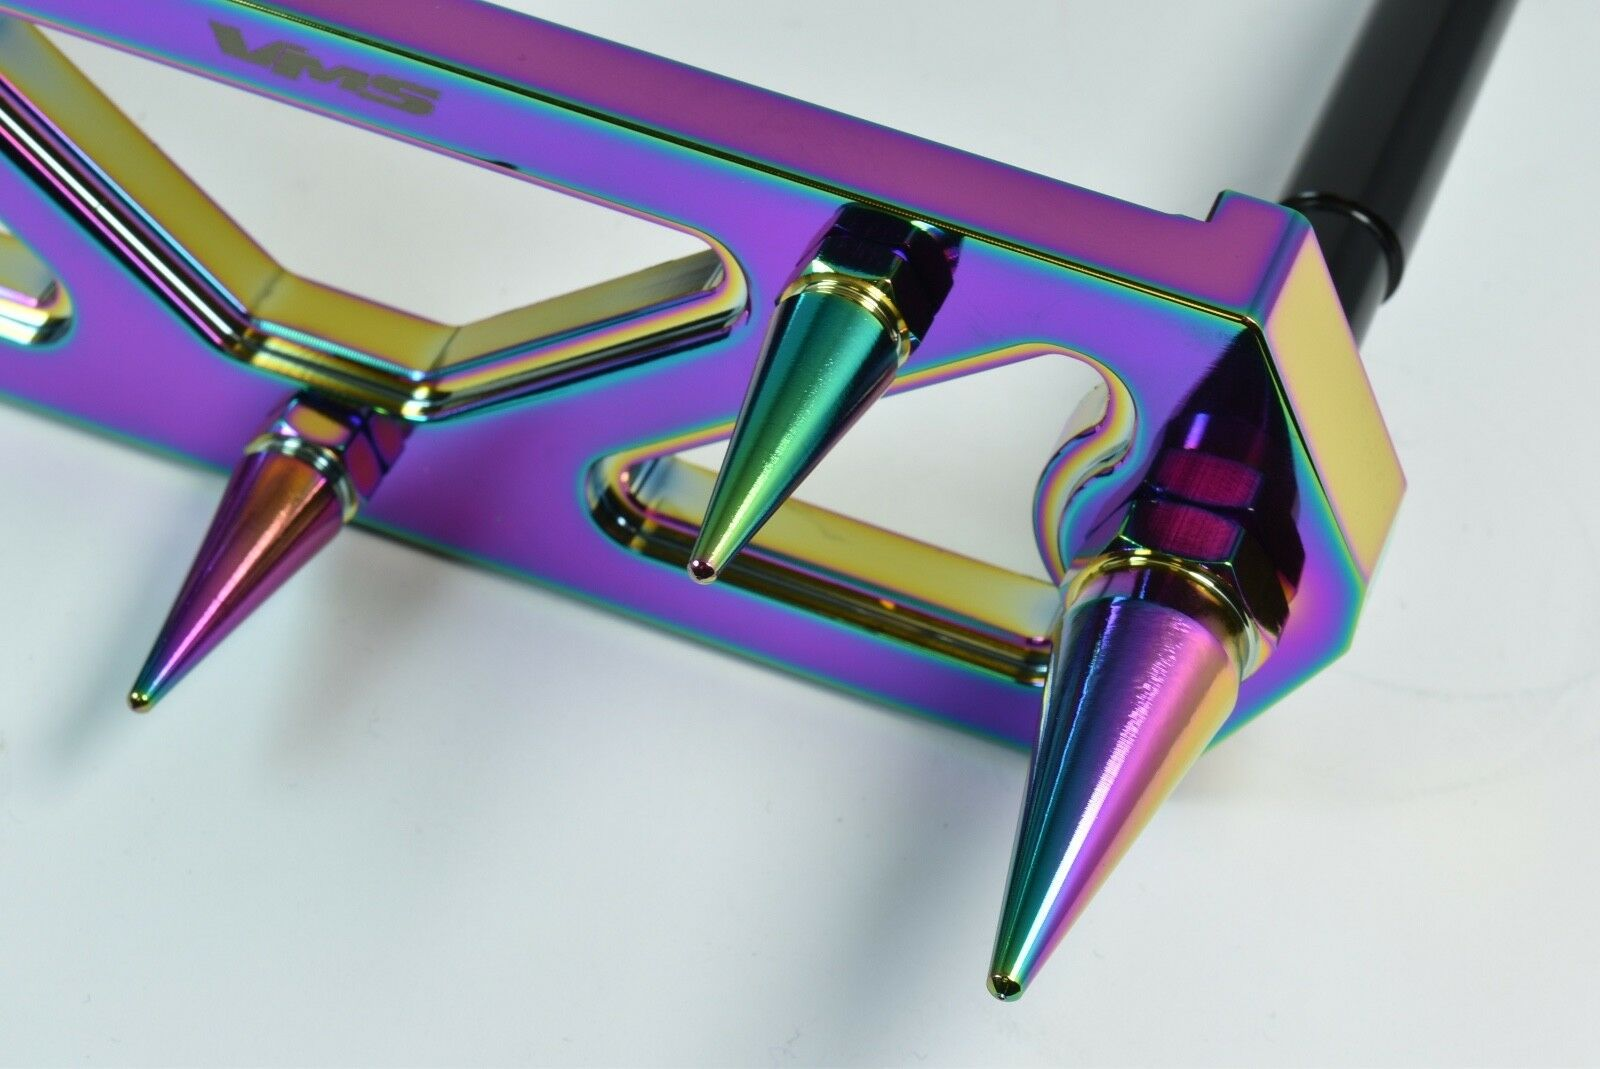 VMS RACING NEOCHROME SPIKED BATTERY TIE DOWN BRACKET BRACE KIT W// RODS FOR ACURA